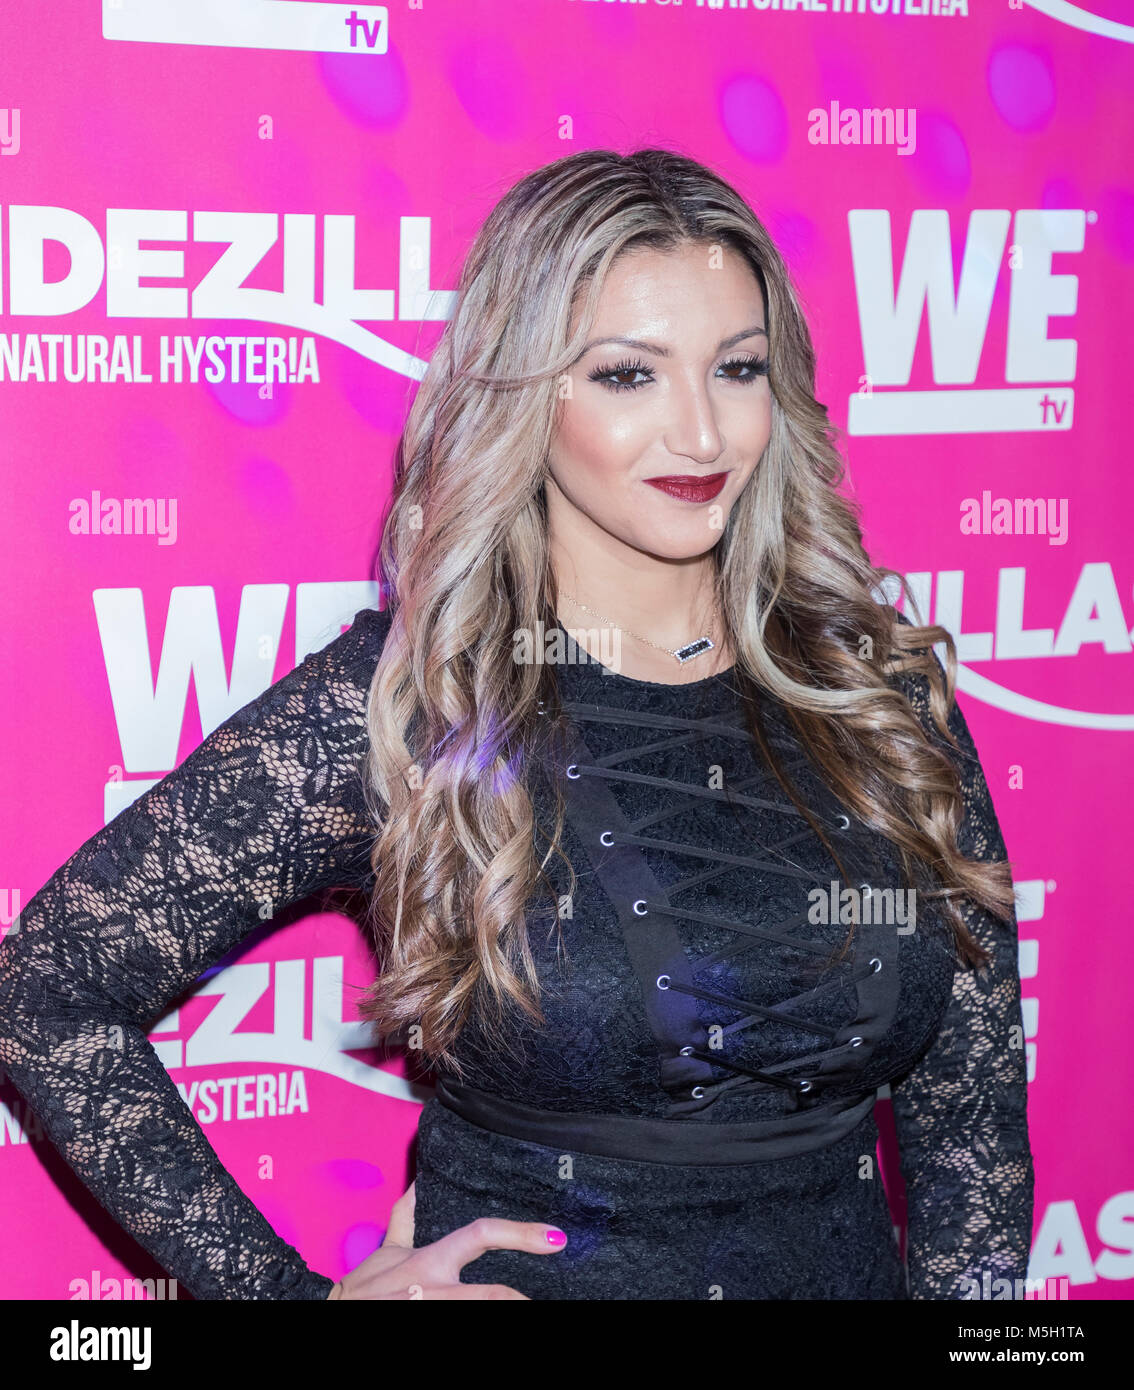 New York, USA. 22nd Feb, 2018. Remy Maadi attends WE TV Launches Bridezillas Museum Of Natural Hysteria at Arena, - Stock Image